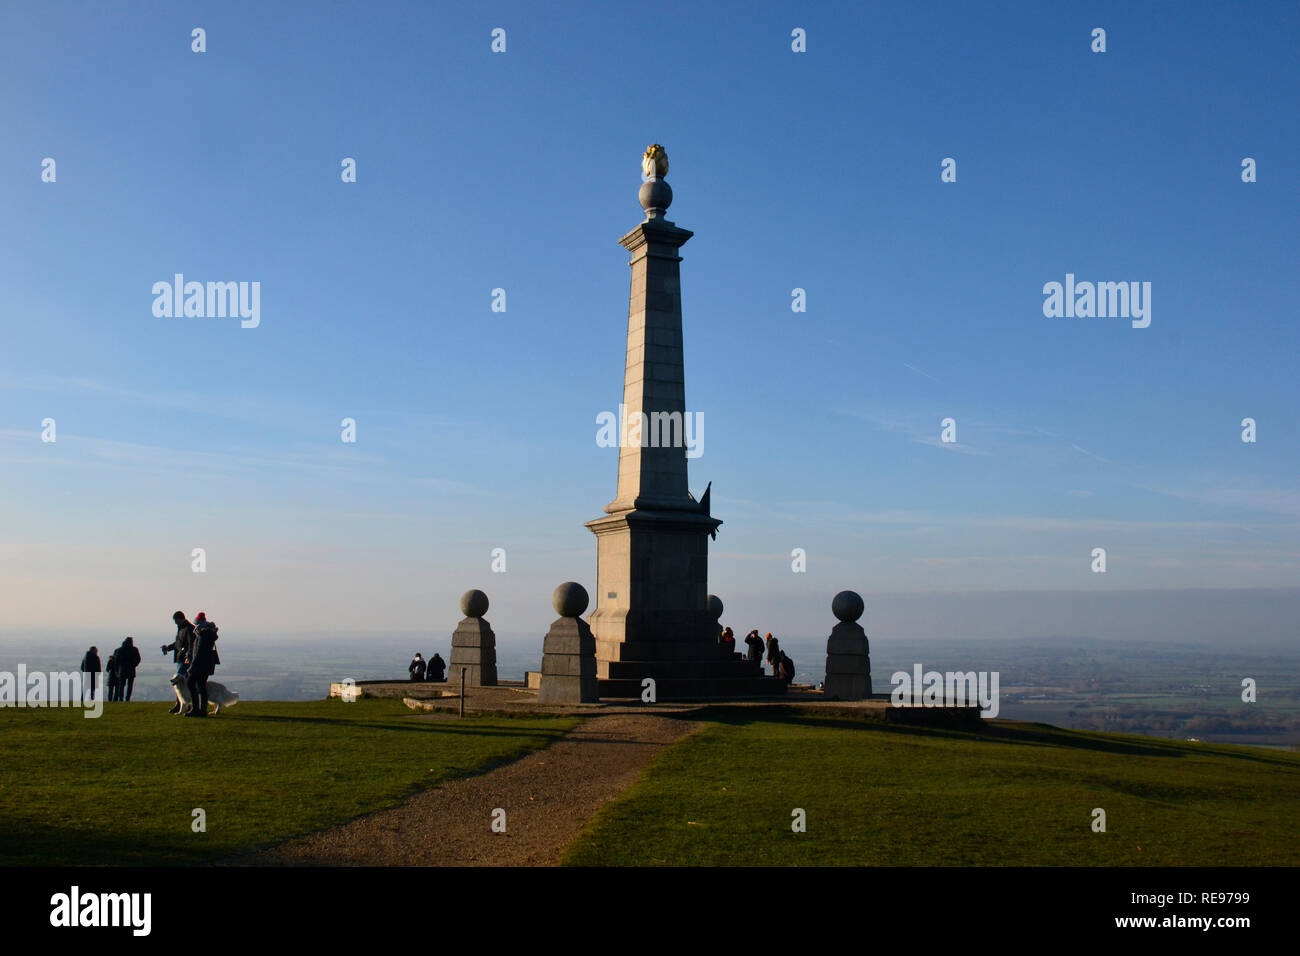 The Boer War Memorial on Coombe Hill, Wendover, Buckinghamshire, UK. Chilterns landscape. Monument - Stock Image